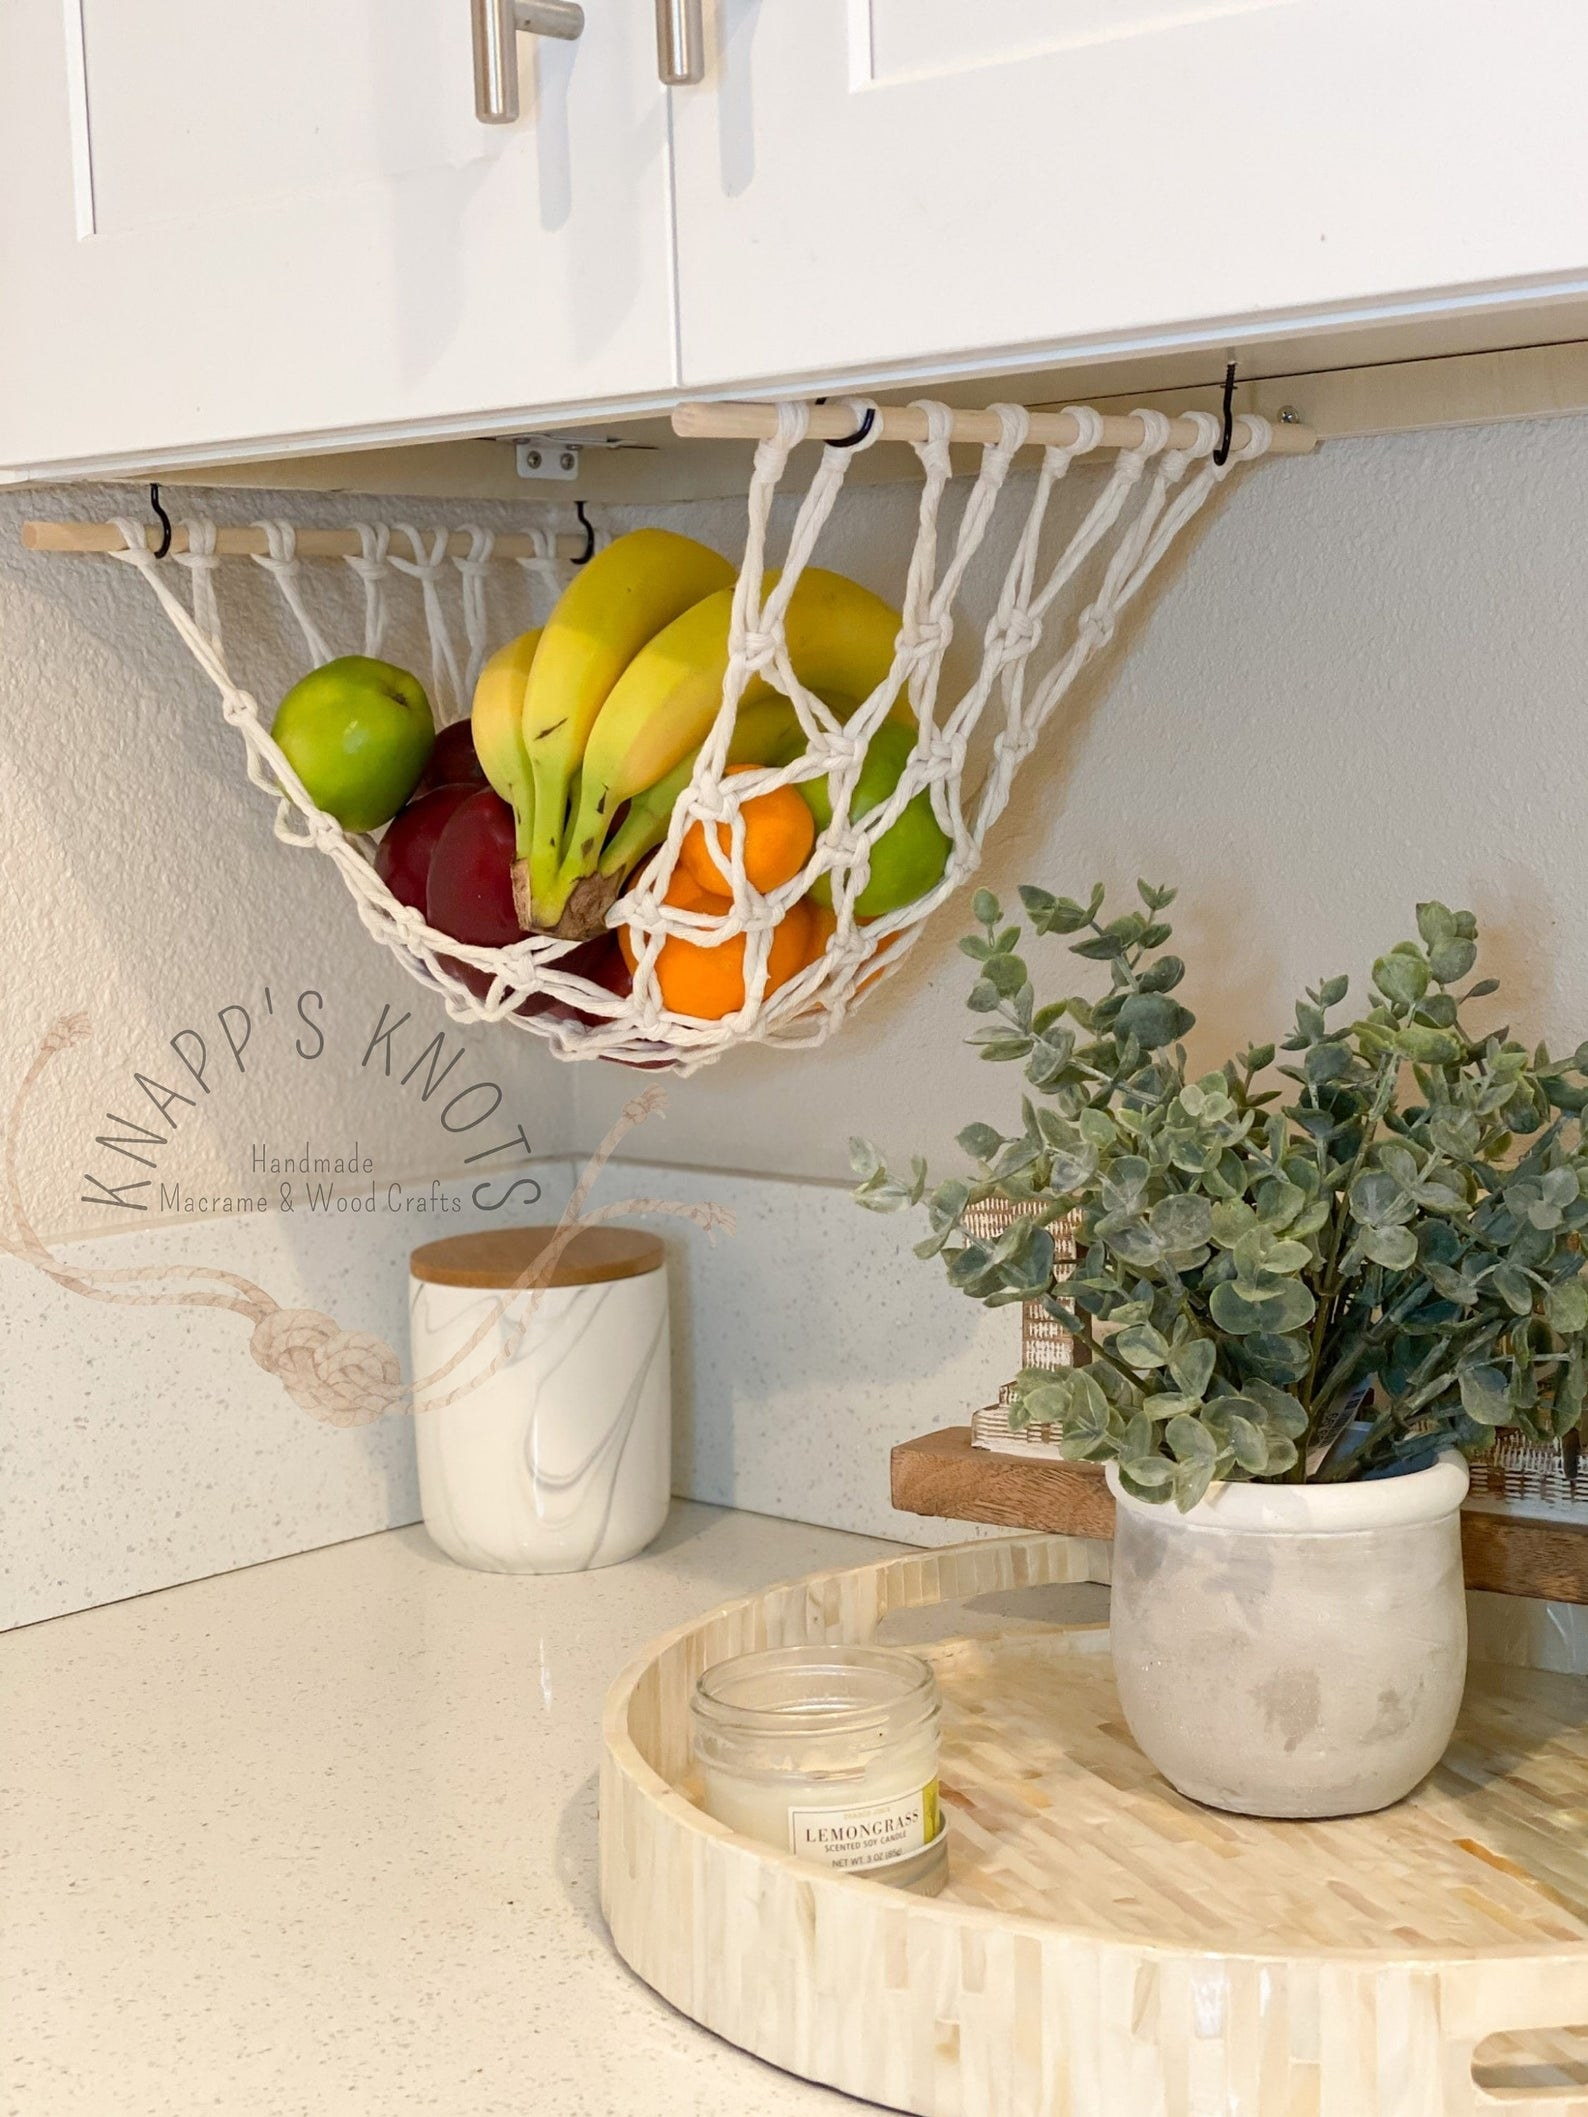 The macrame net hung below a cabinet with wood dowels and hooks